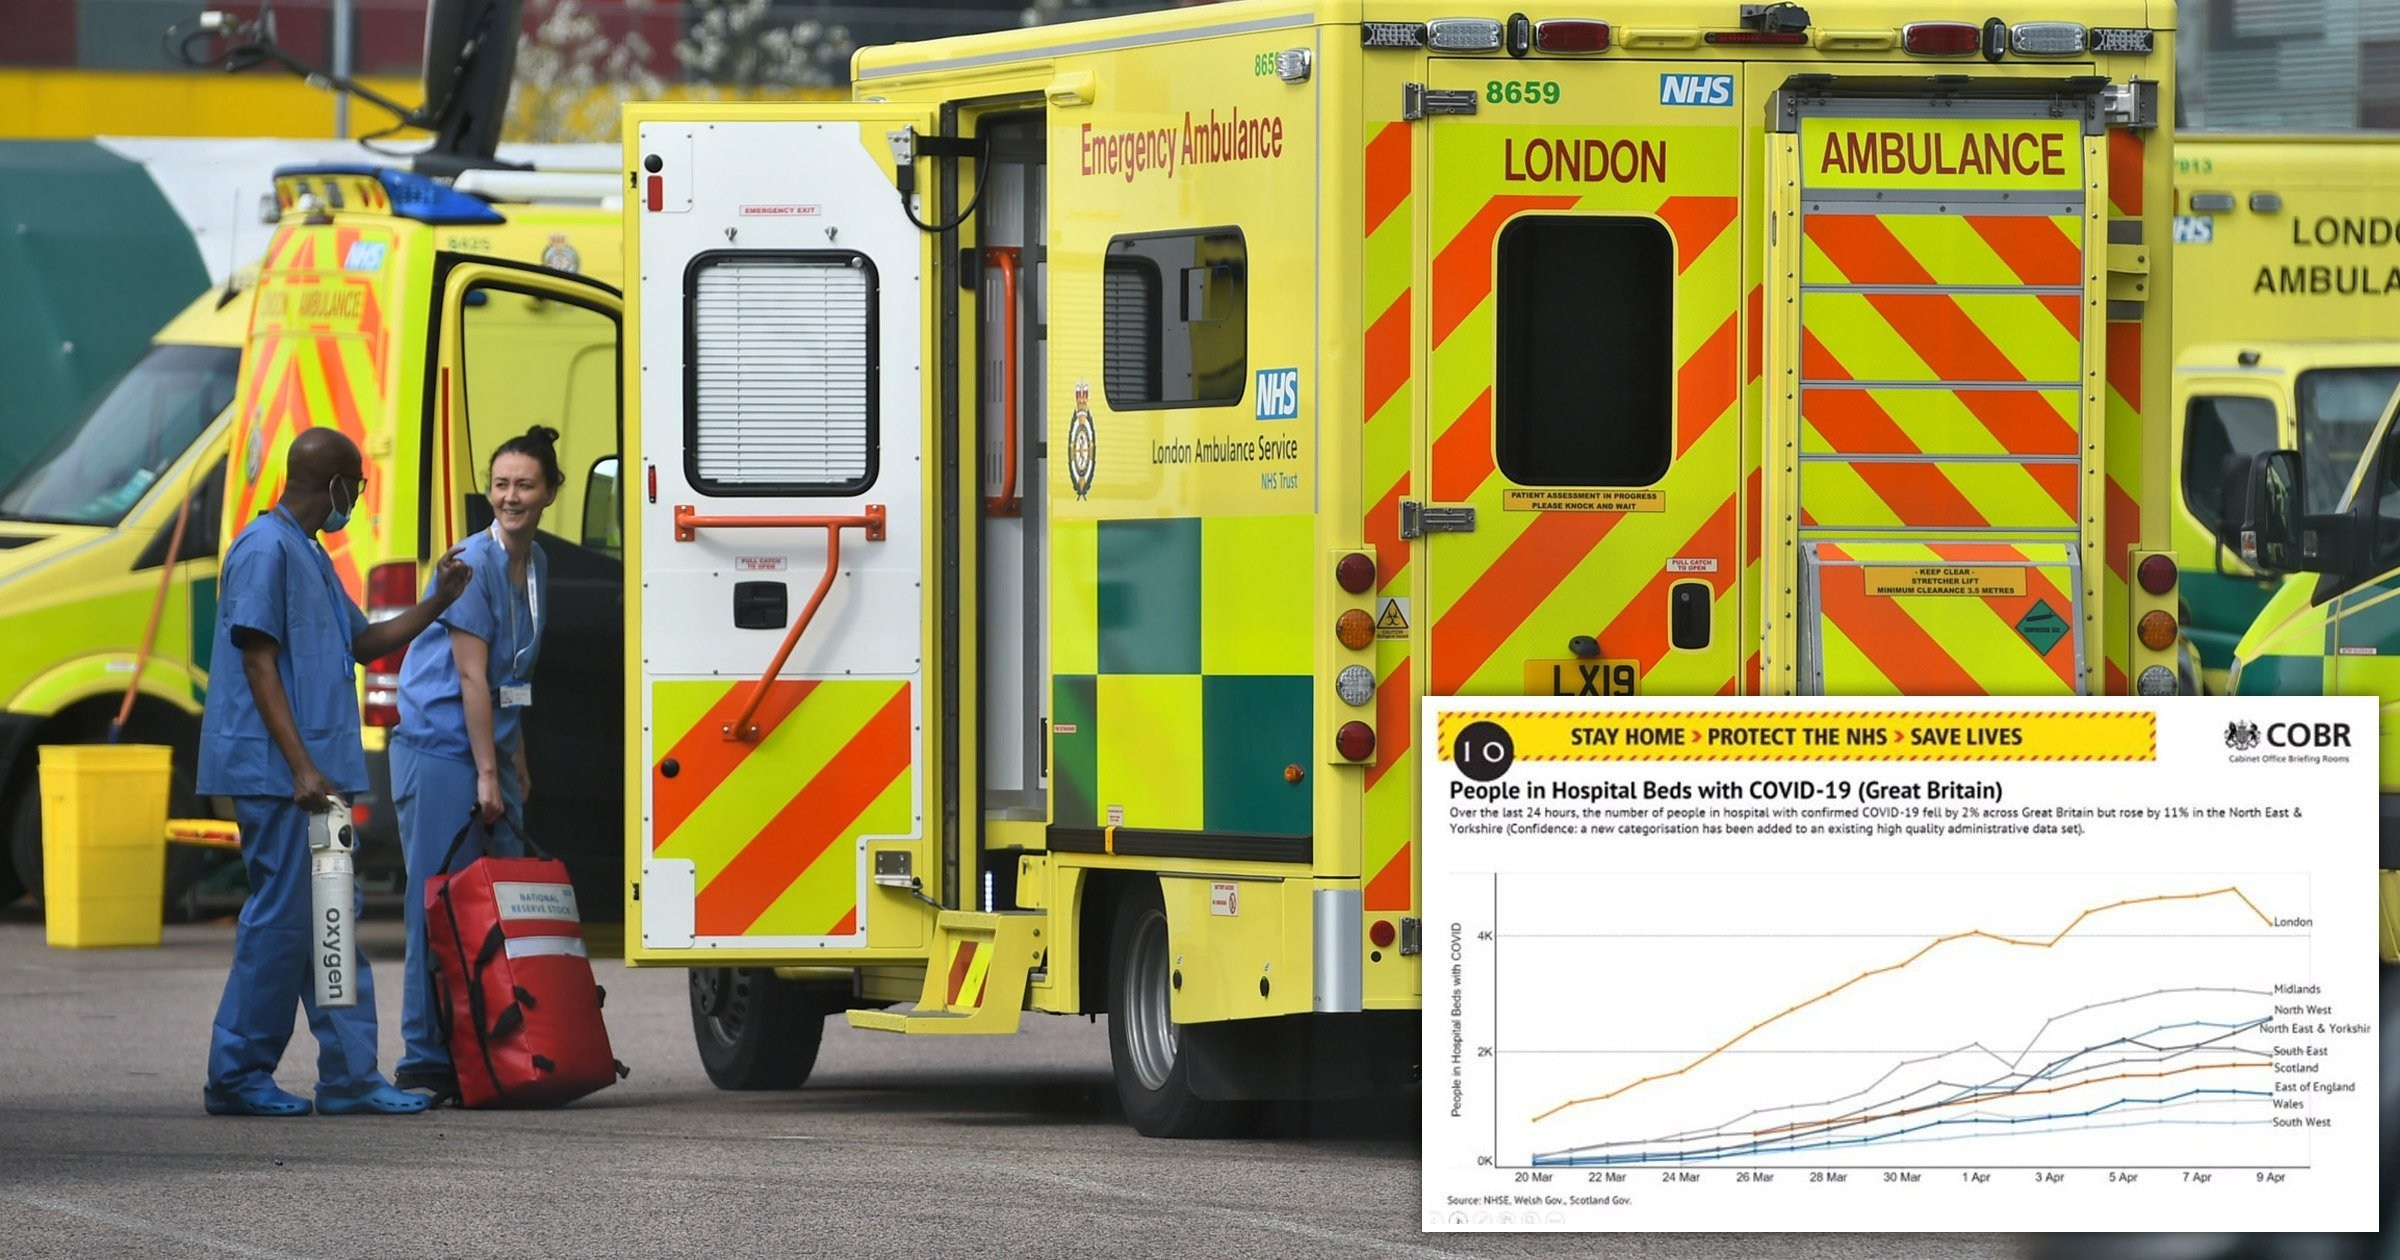 Number of people in hospital beds in London drops